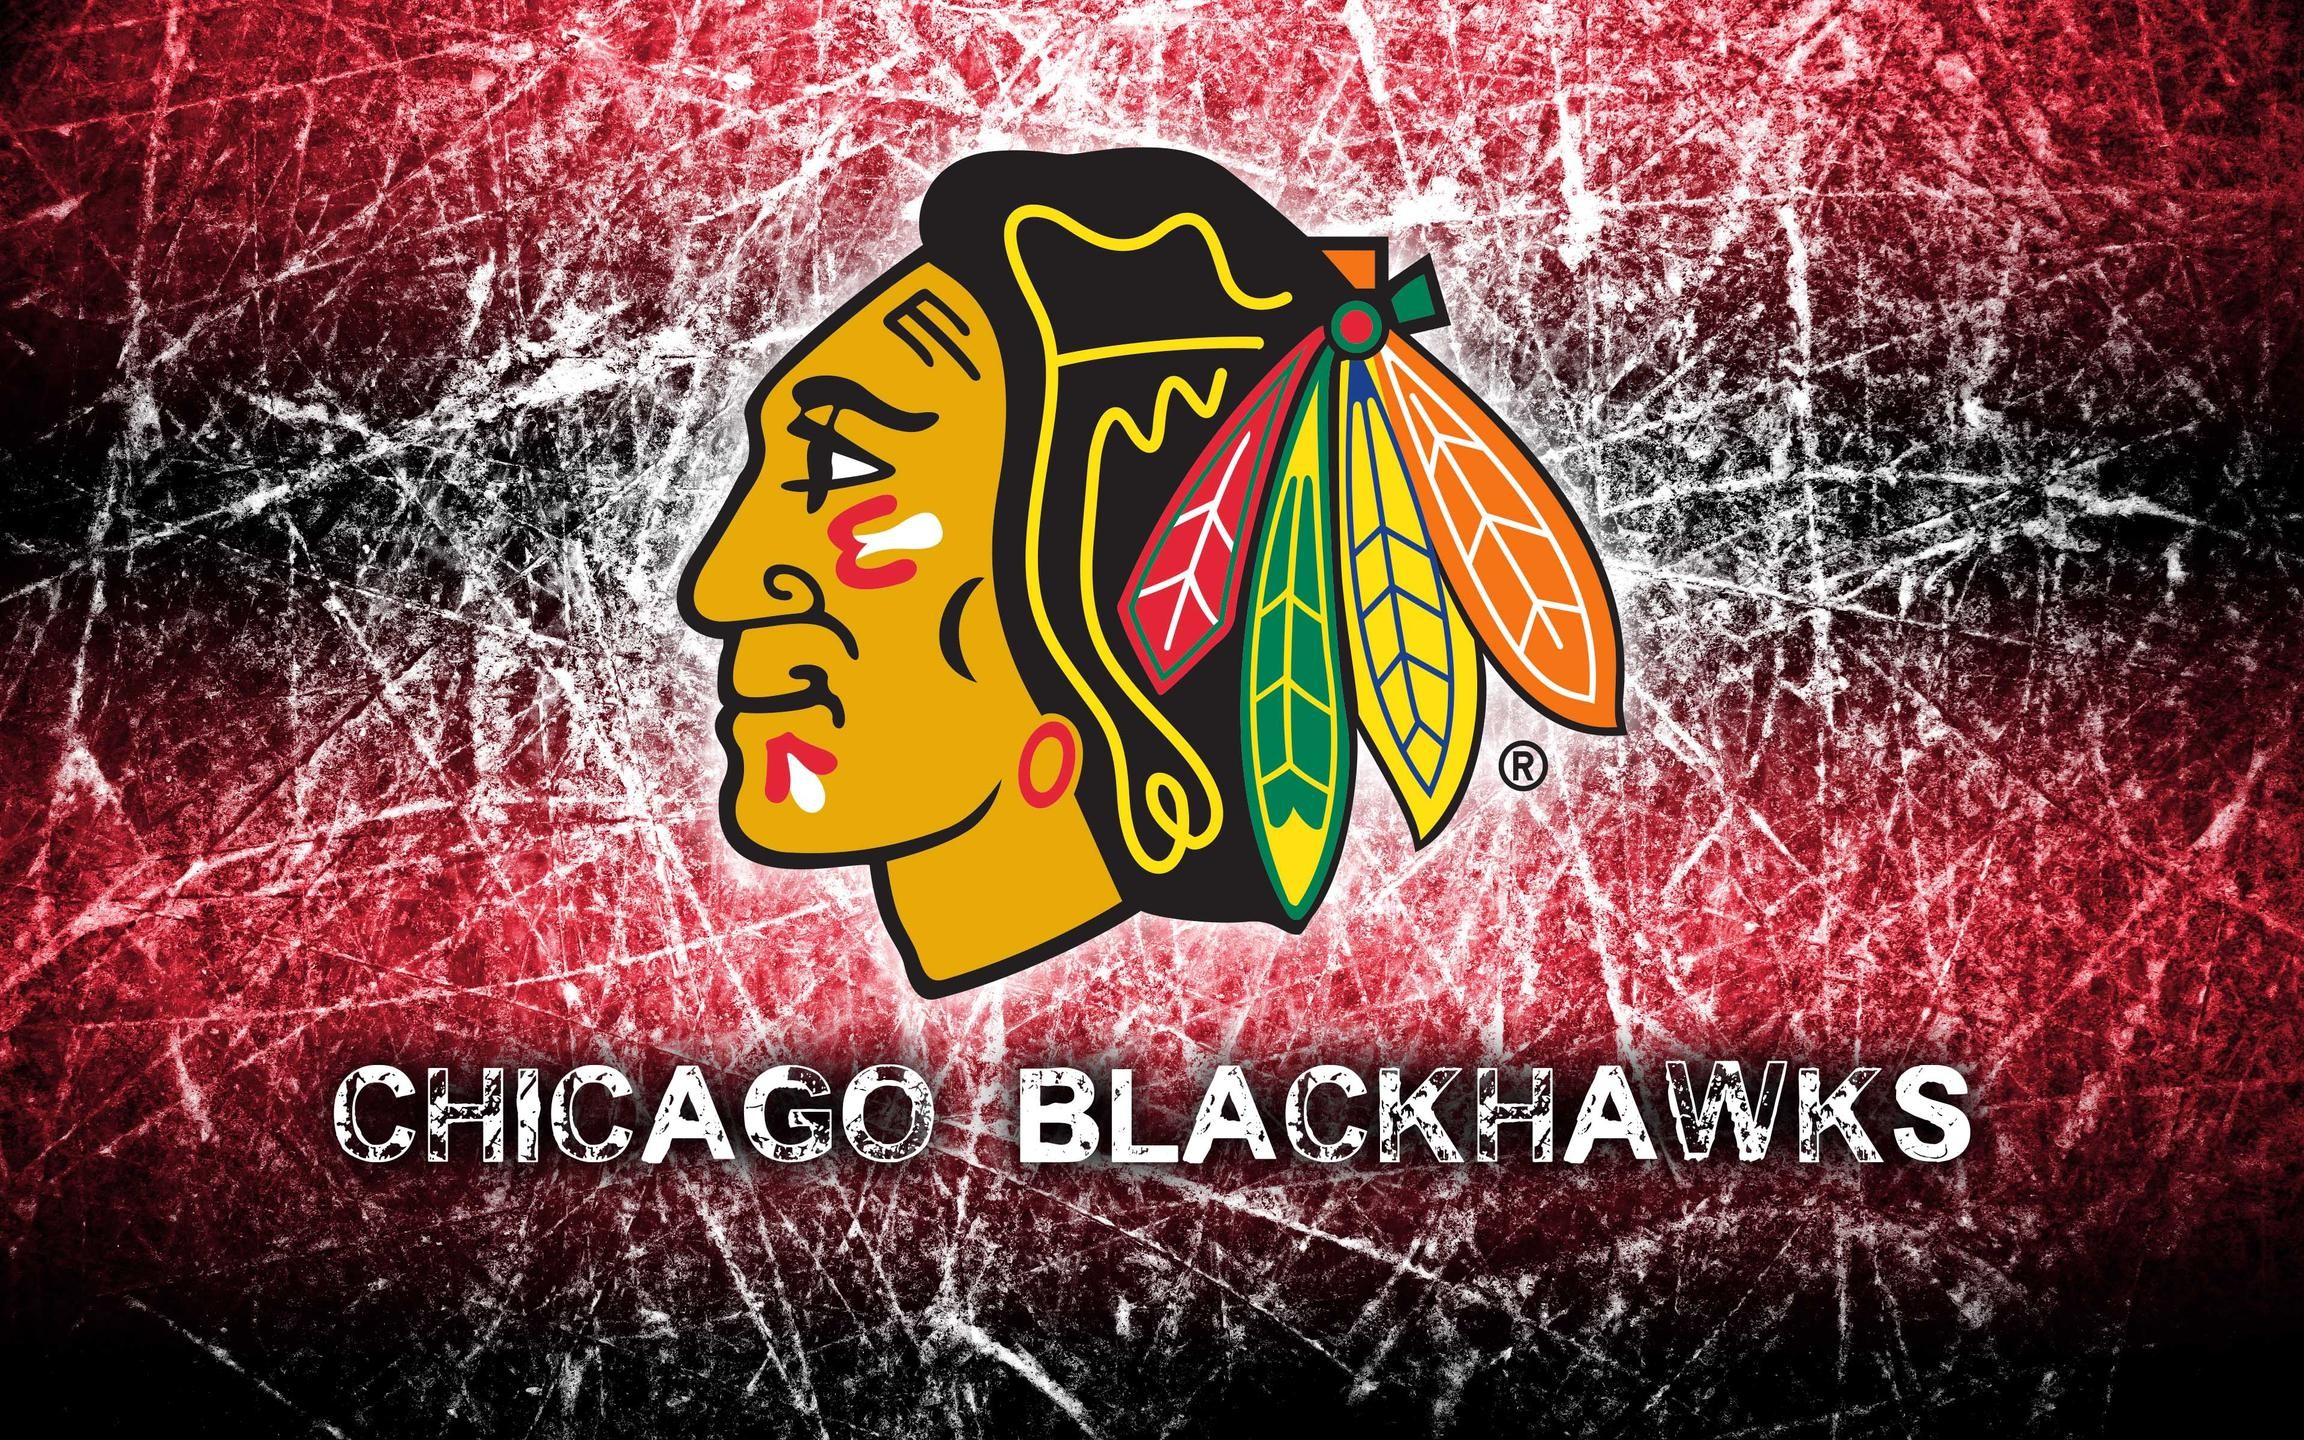 Chicago Sports Wallpaper Iphone 6: Chicago Blackhawks Wallpaper ·① Download Free Beautiful